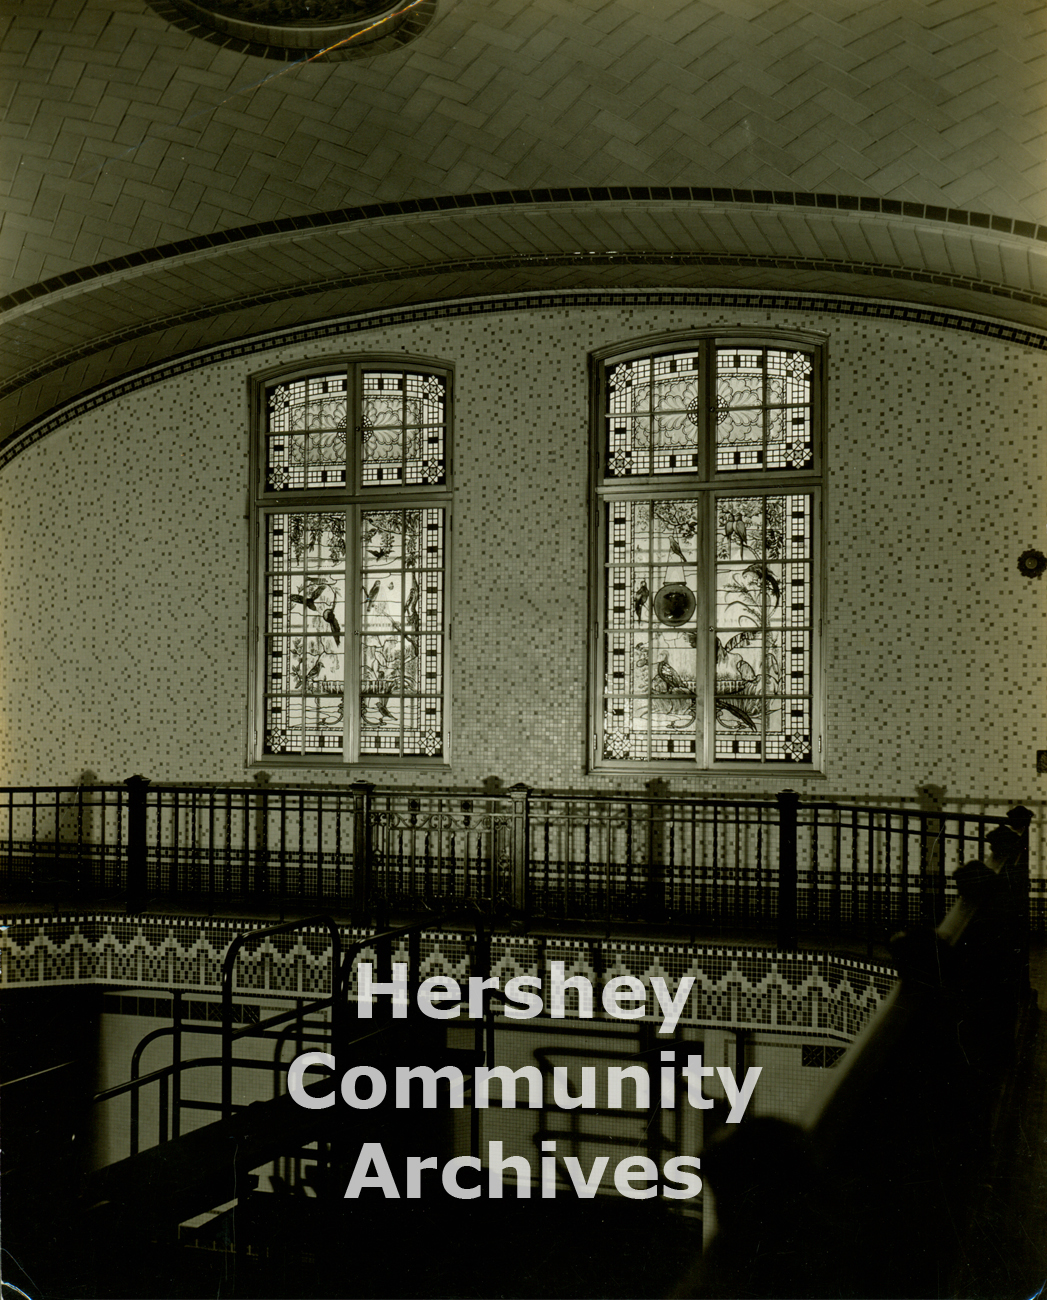 Archival Treasures: 25 Years Of Caring For Hershey's